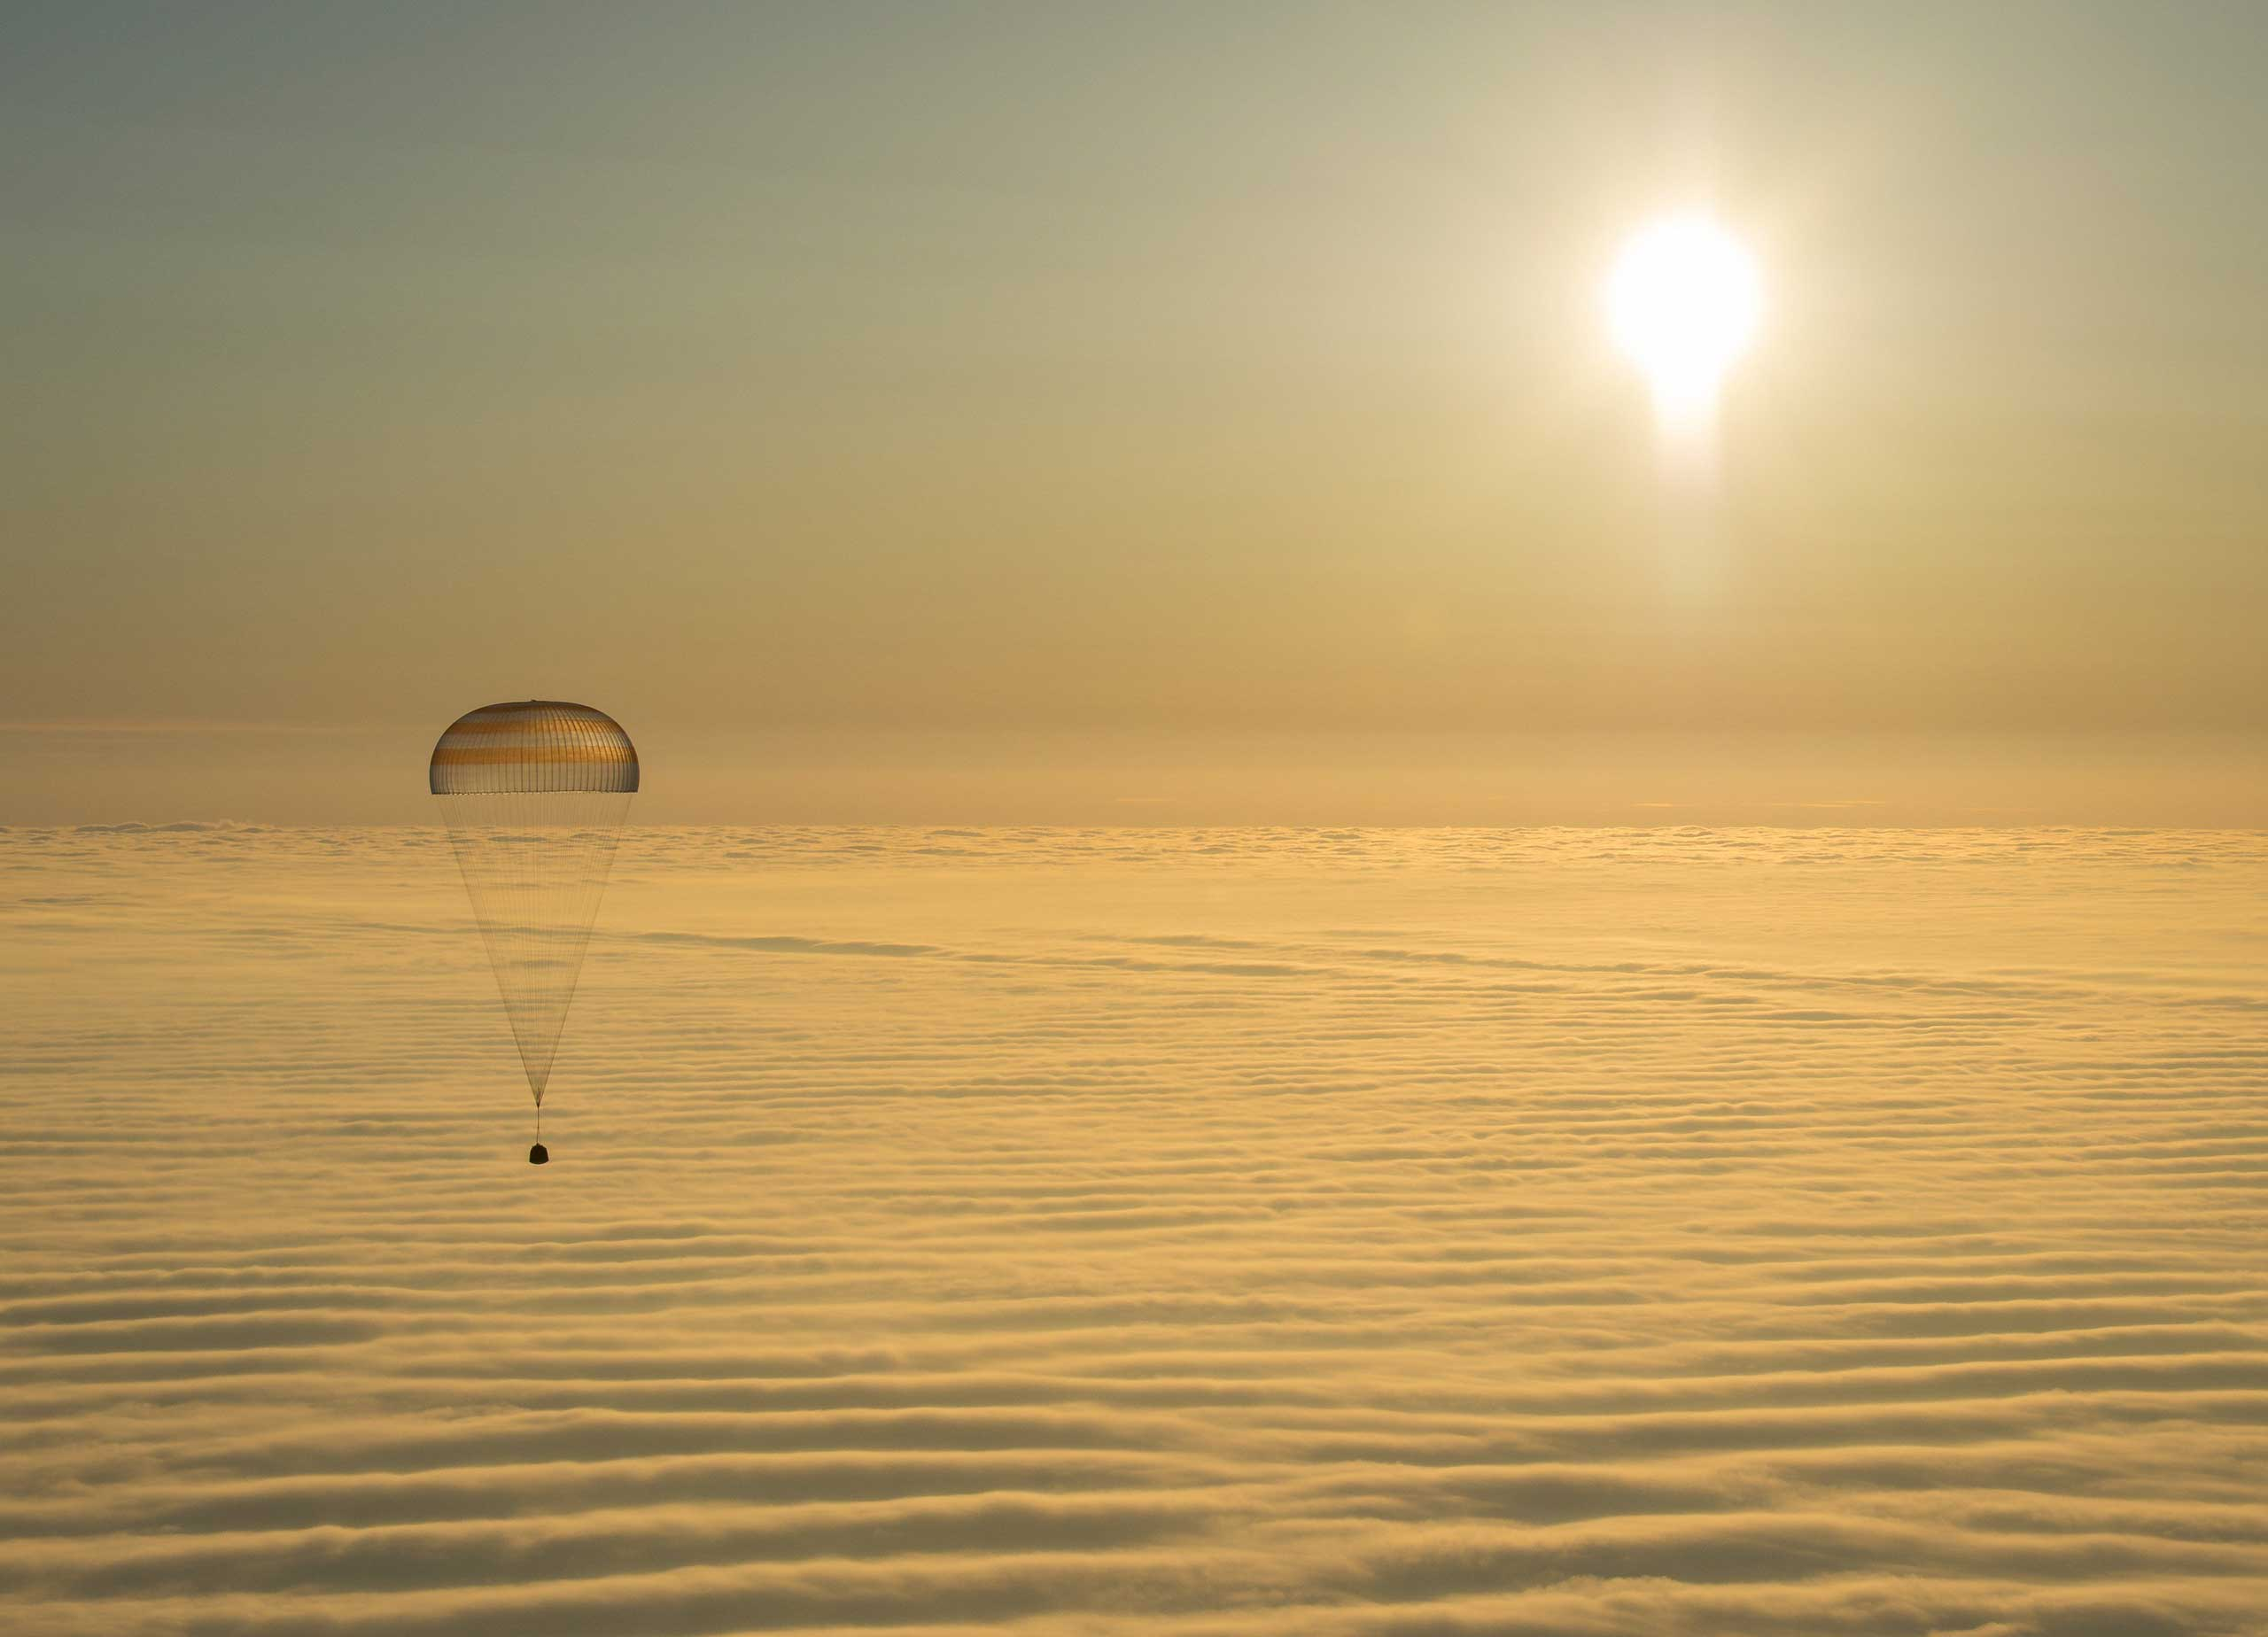 The Soyuz TMA-14M spacecraft is seen as it lands with Expedition 42 commander Barry Wilmore of NASA, Alexander Samokutyaev of the Russian Federal Space Agency (Roscosmos) and Elena Serova of Roscosmos near the town of Zhezkazgan, Kazakhstan. NASA Astronaut Wilmore, Russian Cosmonauts Samokutyaev and Serova are returning after almost six months onboard the International Space Station where they served as members of the Expedition 41 and 42 crews. March 12, 2015.